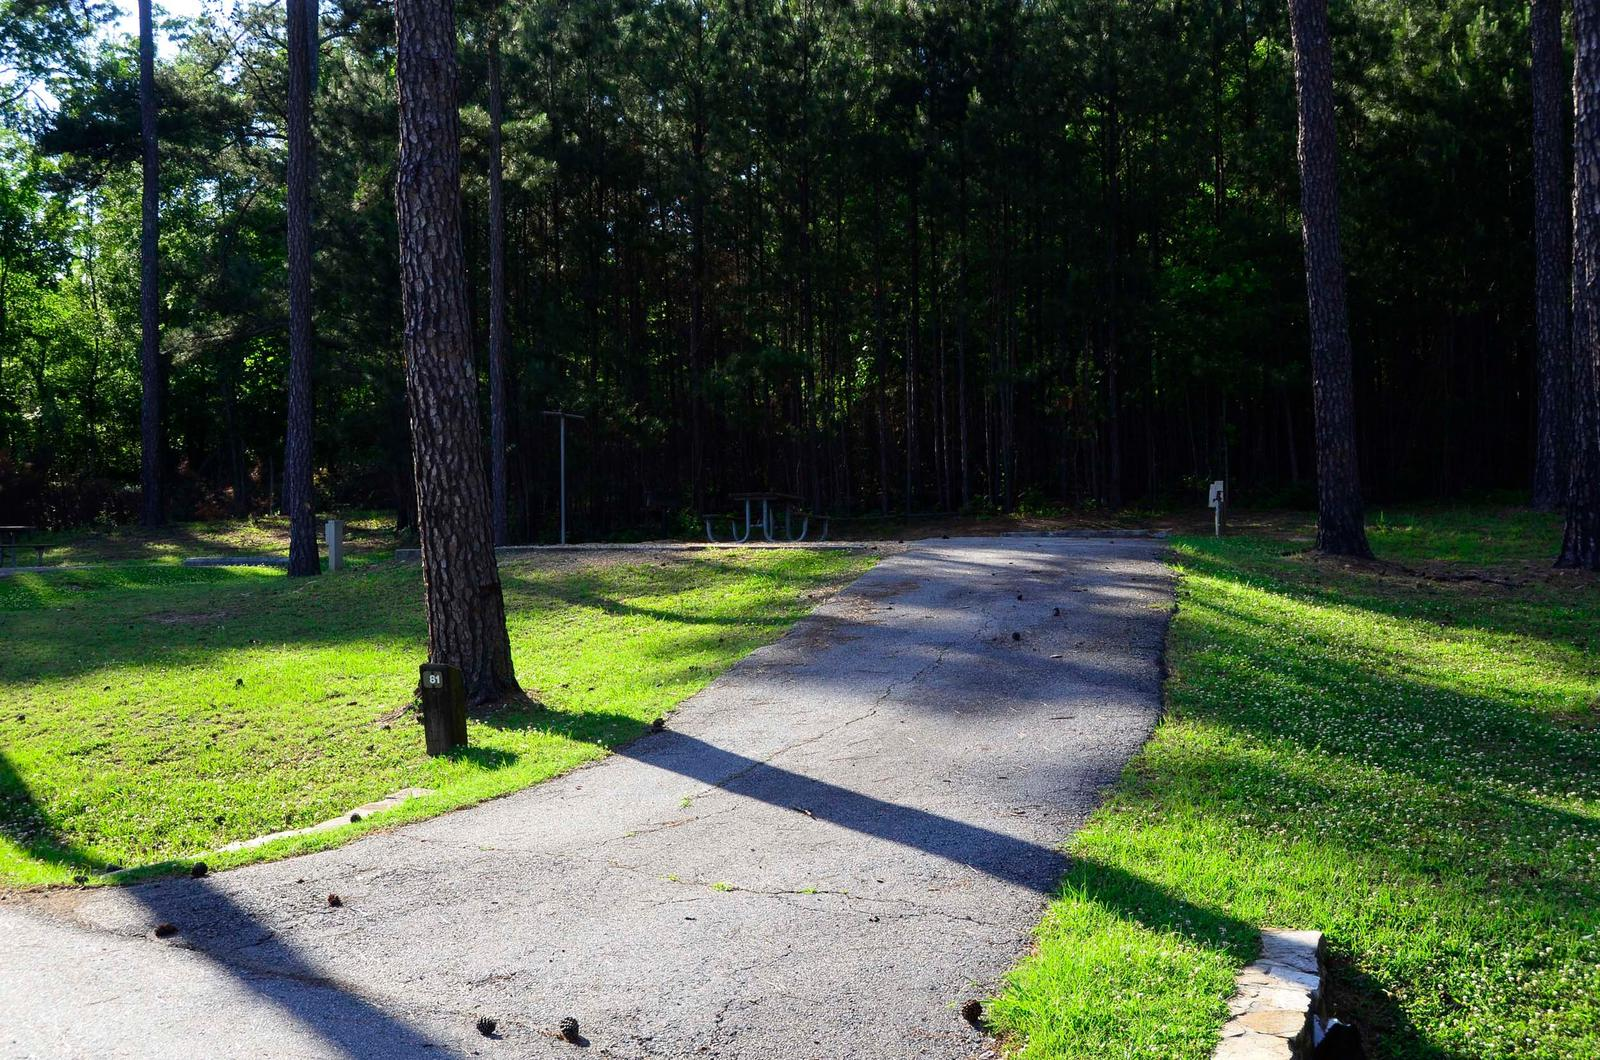 Sweetwater Campground, campsite #81.